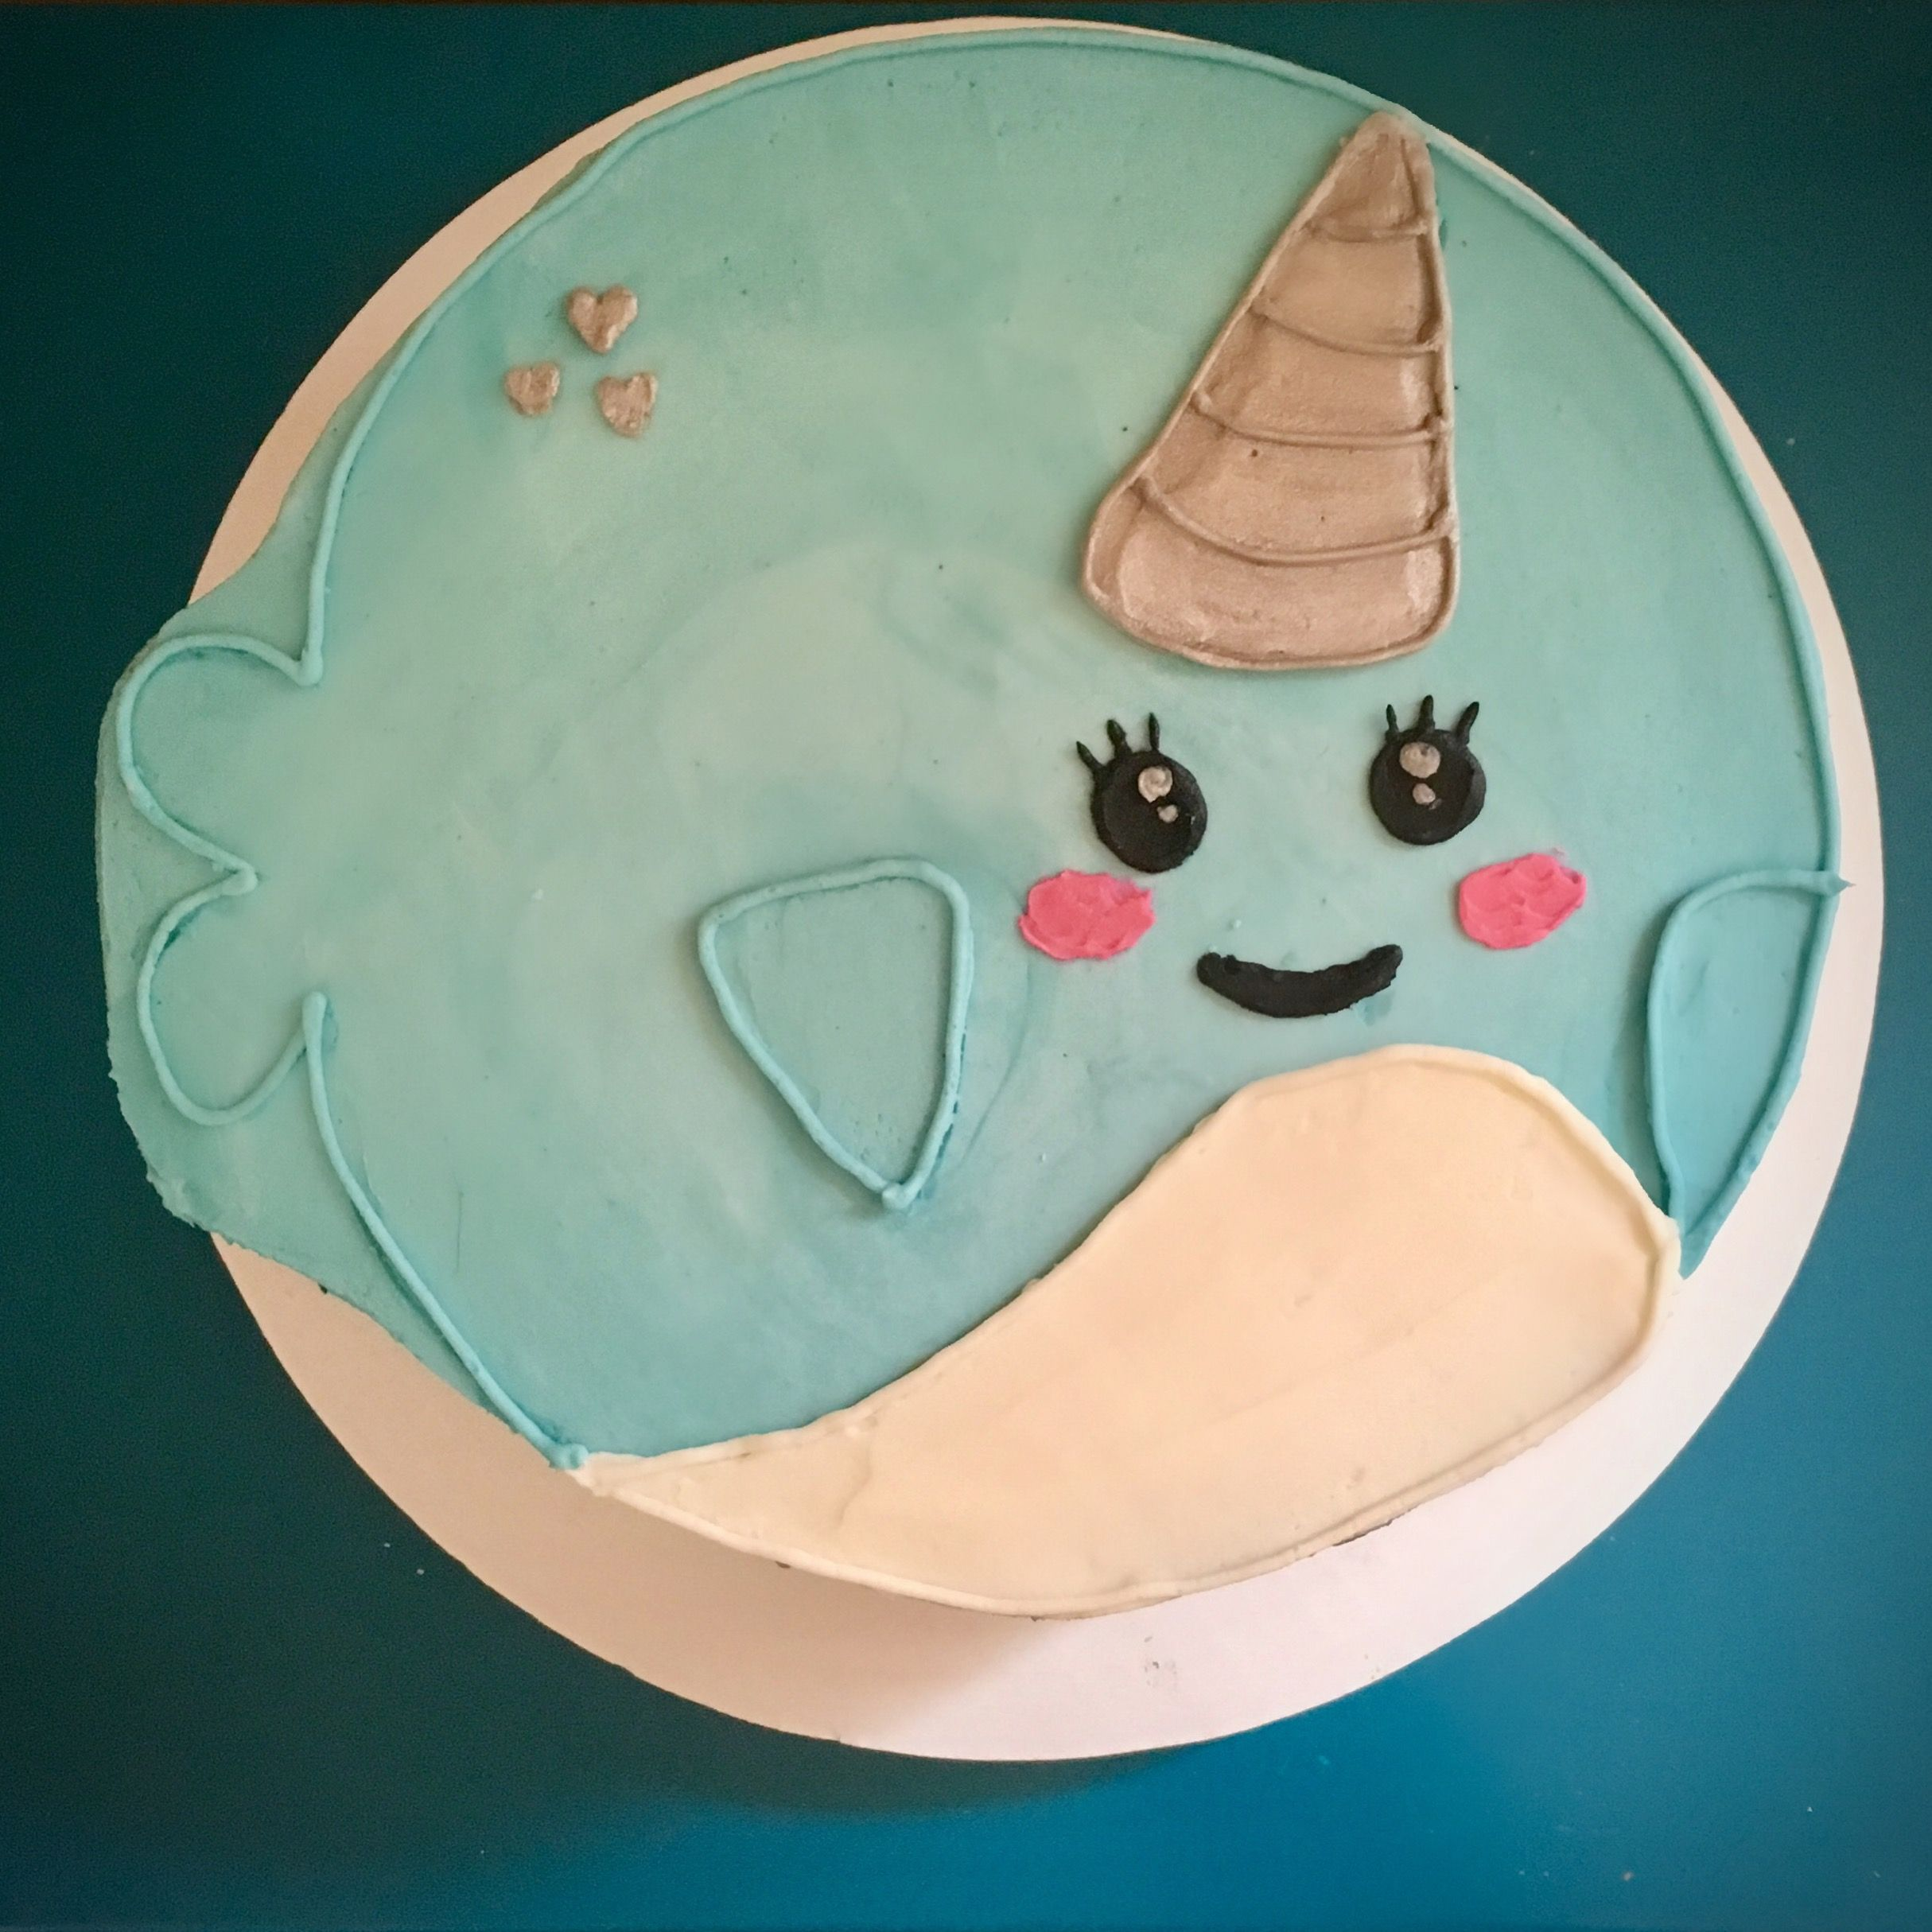 Narwhal and unicorn cartoon narwhal jokes funny pictures - Narwhal Activities For Kids Ocean Stem Ocean Arctic Animals And School